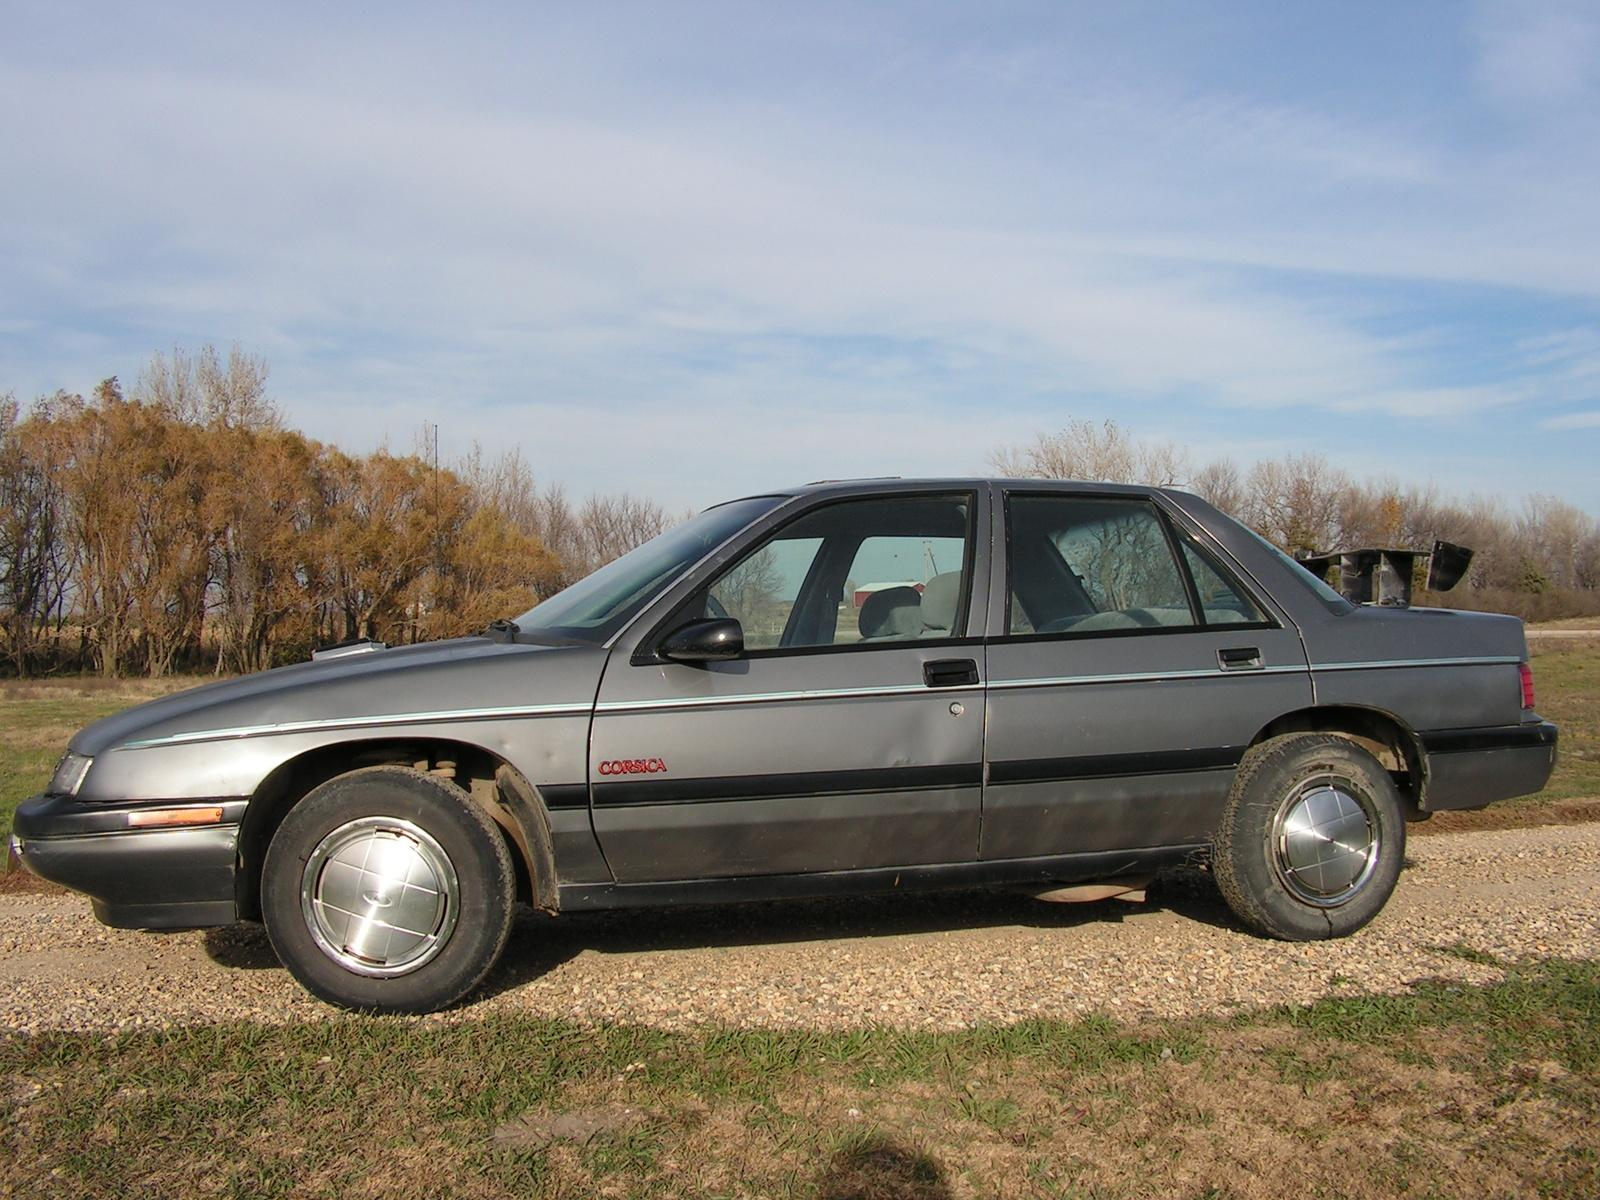 hight resolution of 1991 chevrolet corsica 6 chevrolet corsica 6 800 1024 1280 1600 origin